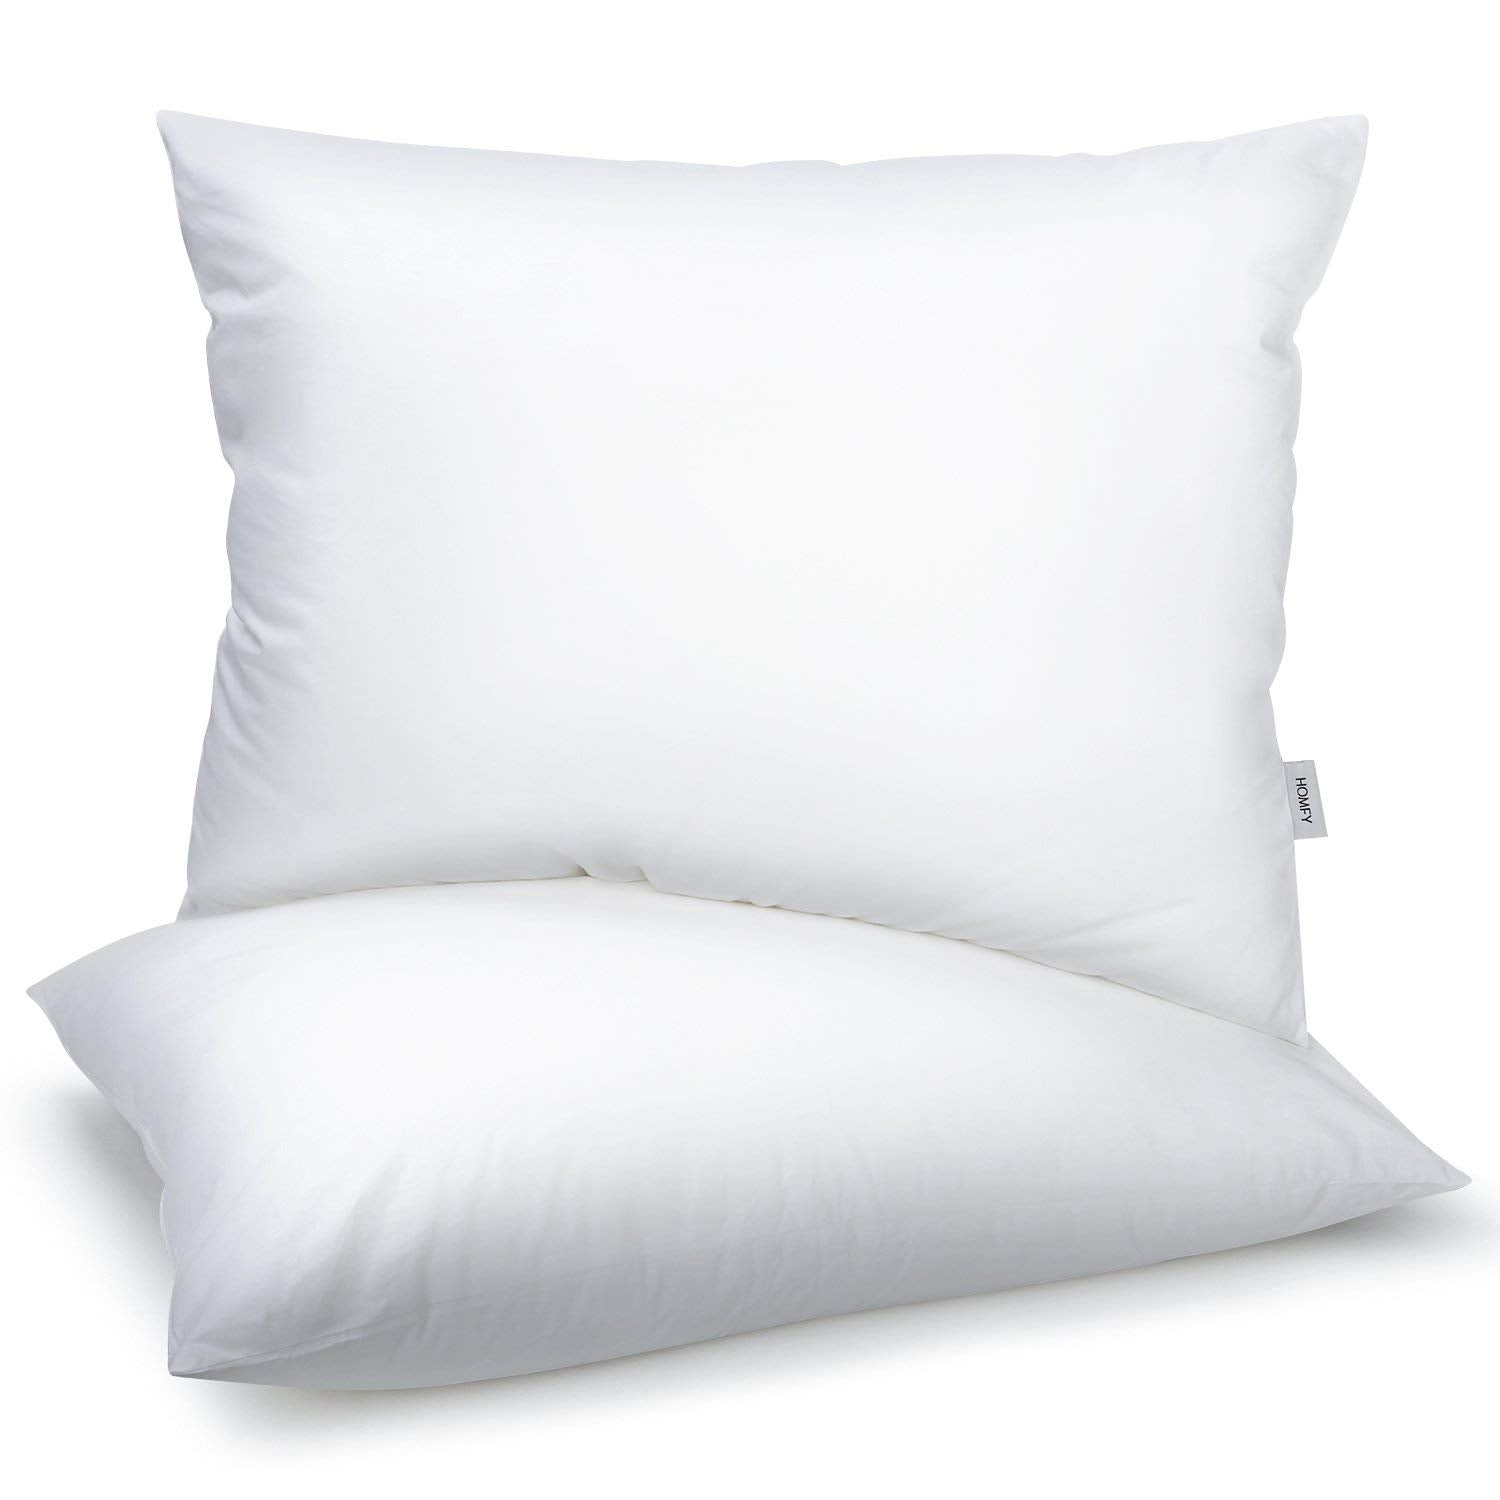 Cotton Pillows, Bed Pillows 2 Pack, Medium Firmness, Hypoallergenic and Dust Mite Resistant (White, 50X75CM)